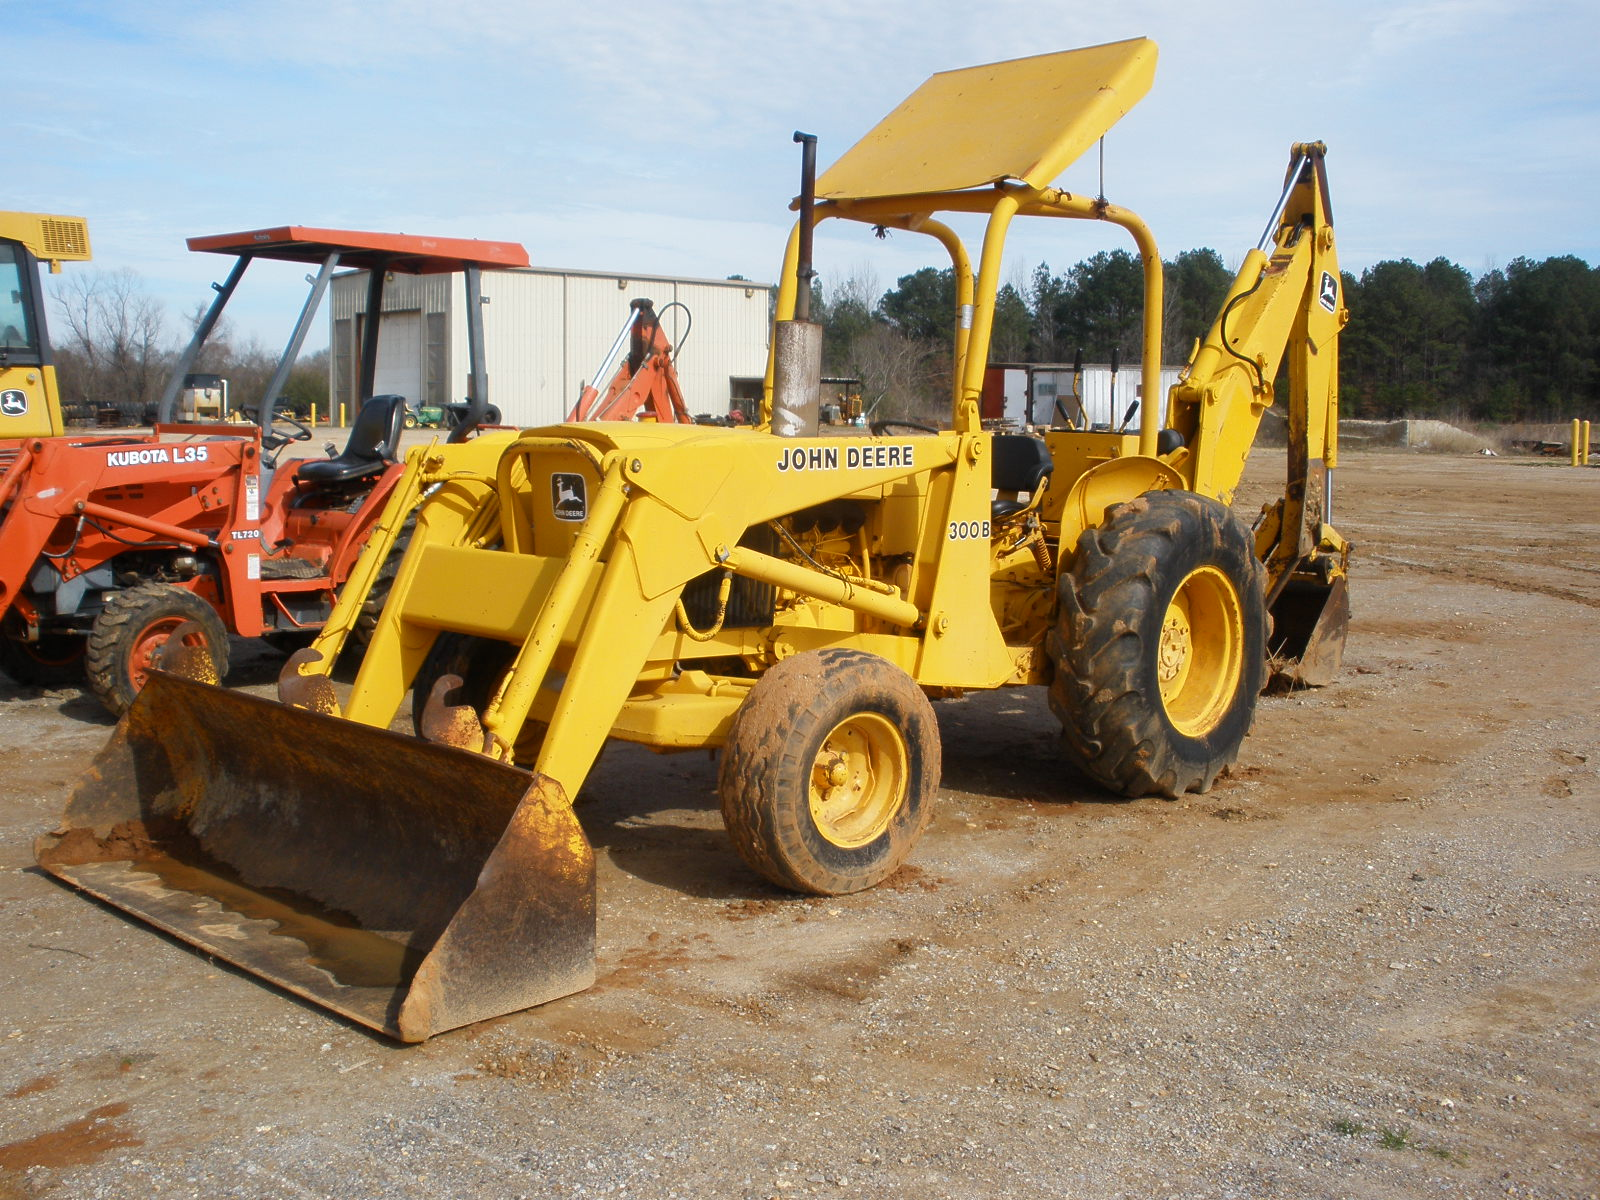 John Deere 300B Backhoe Specifications submited images.